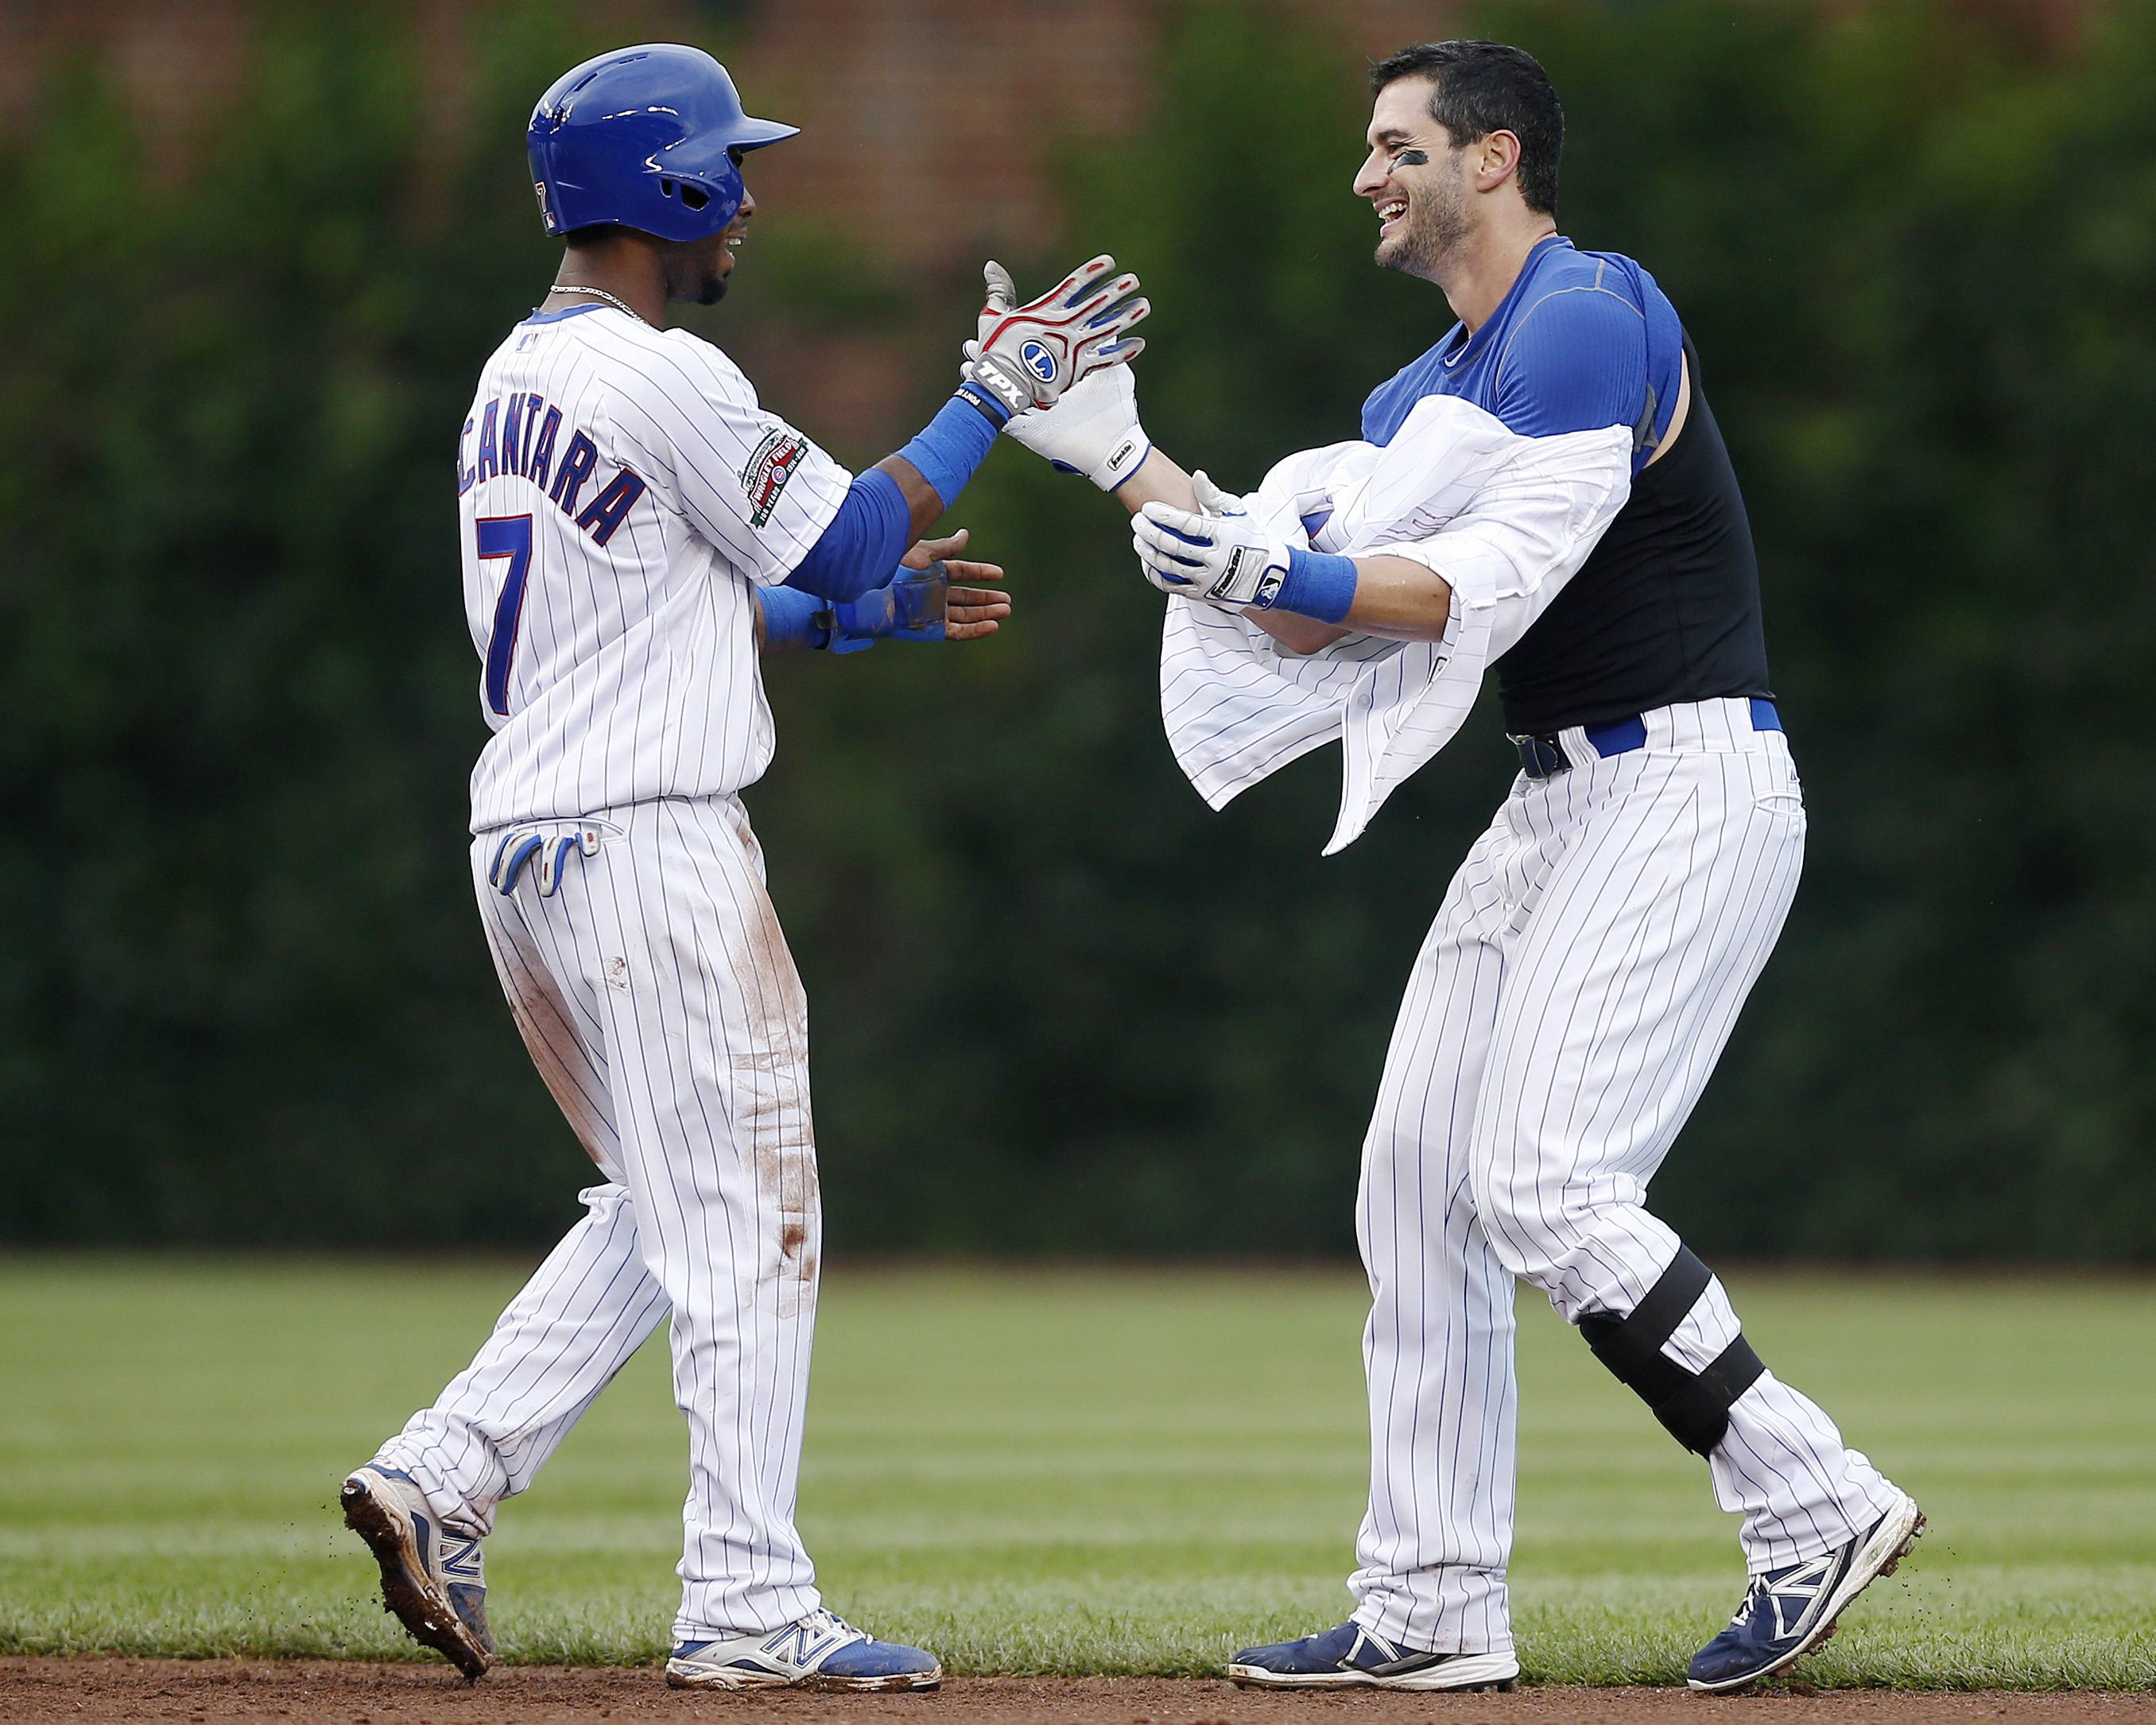 Cubs face tough choice with Alcantara